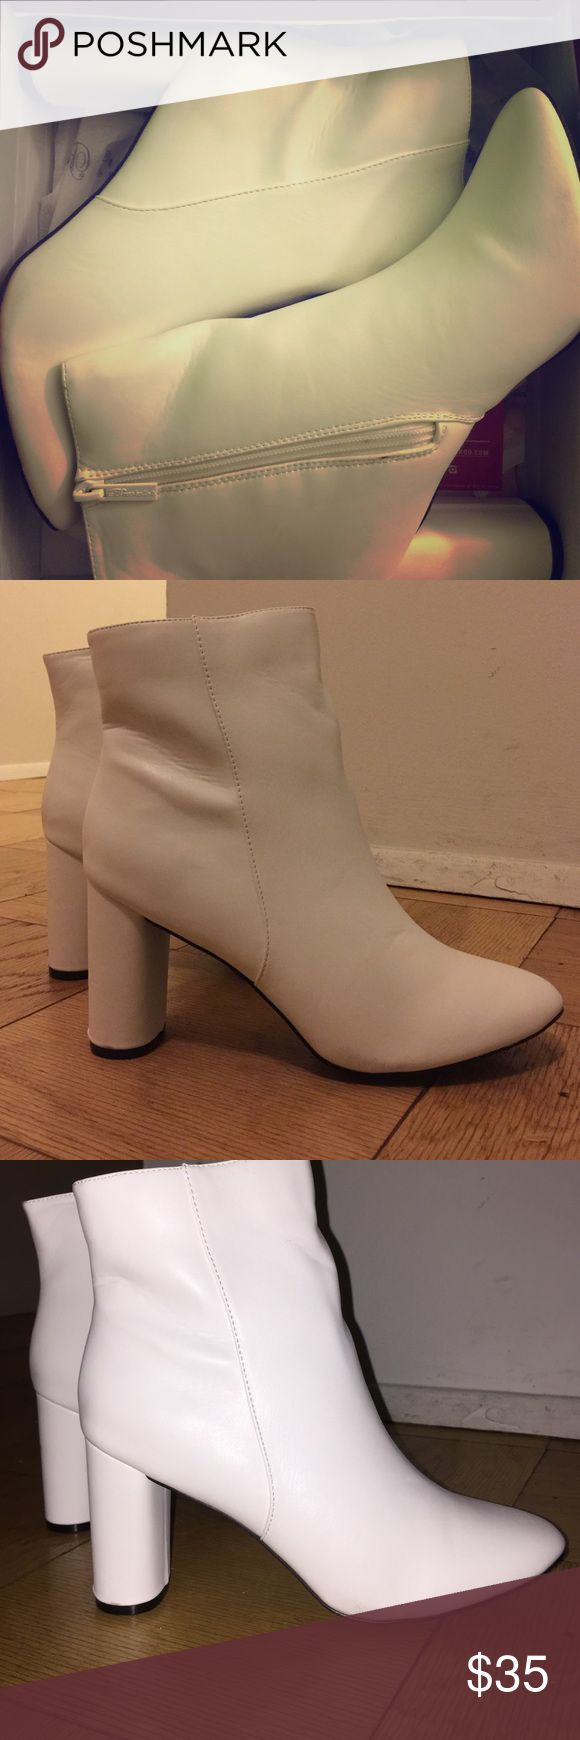 Breckelle's White Ankle Booties Adorable white ankle booties that can be worn with Bohemian flair or on a night out on the town ! Also, never worn! Breckelles Shoes Ankle Boots & Booties